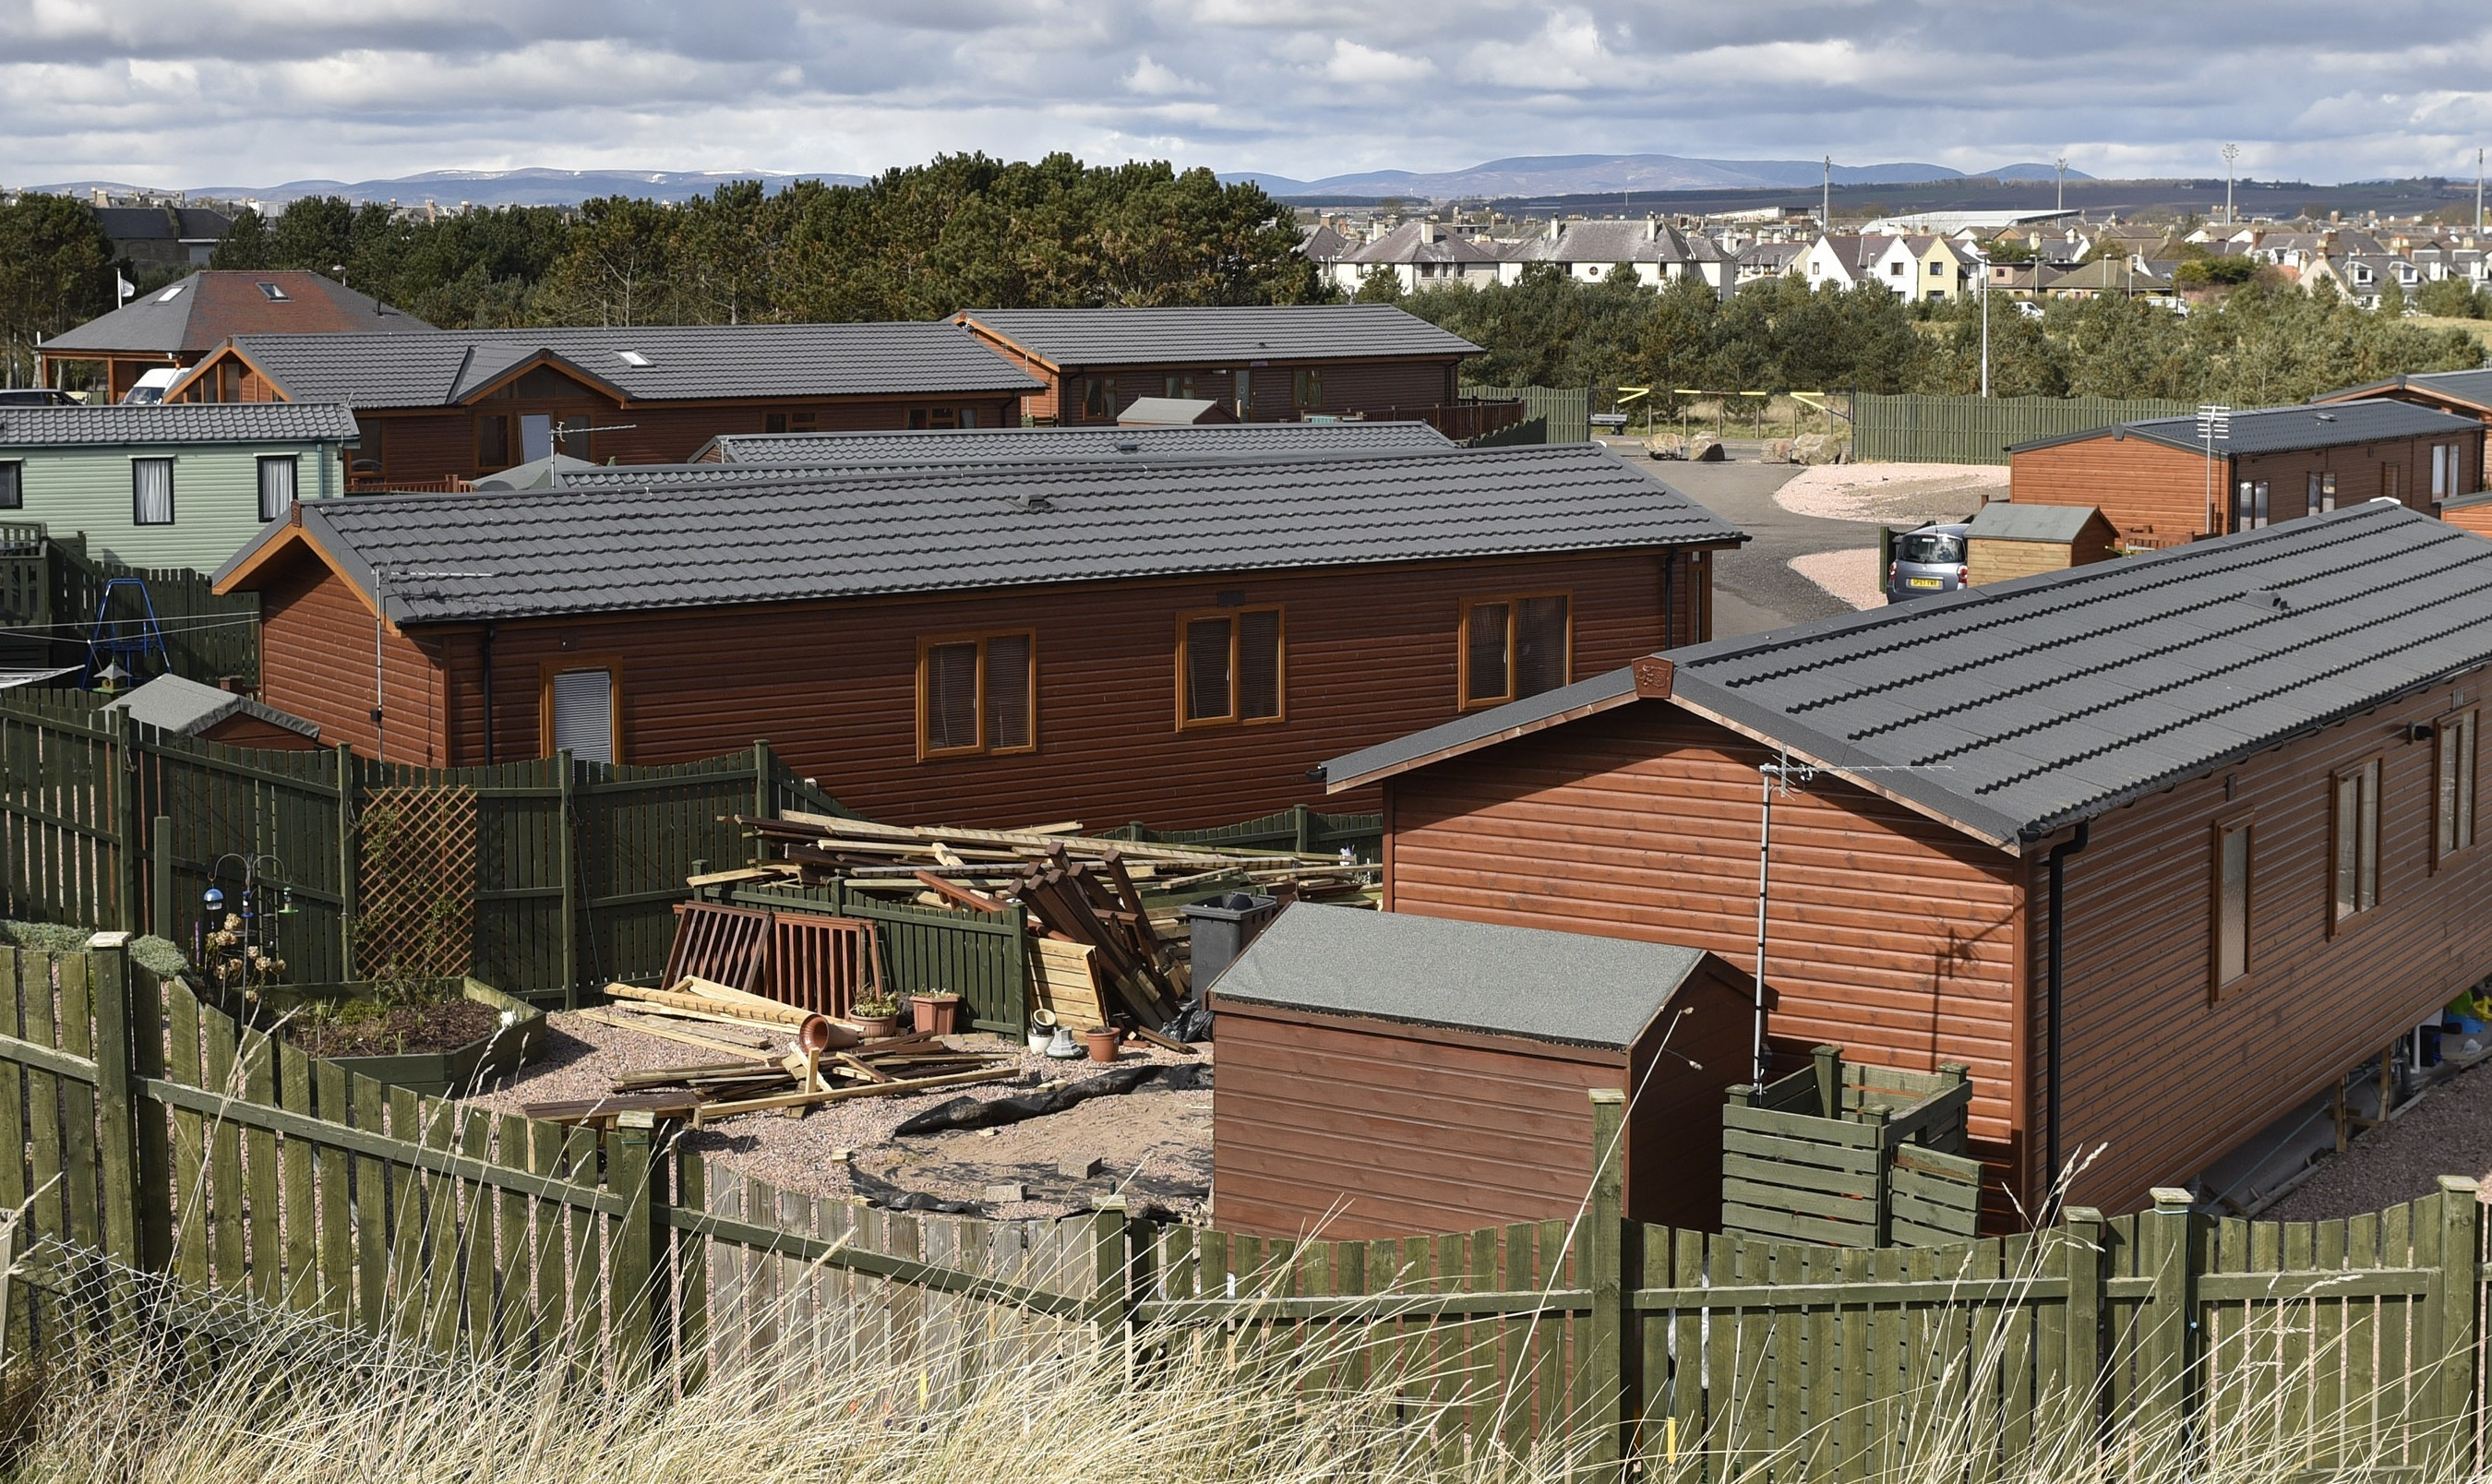 South Links holiday park.